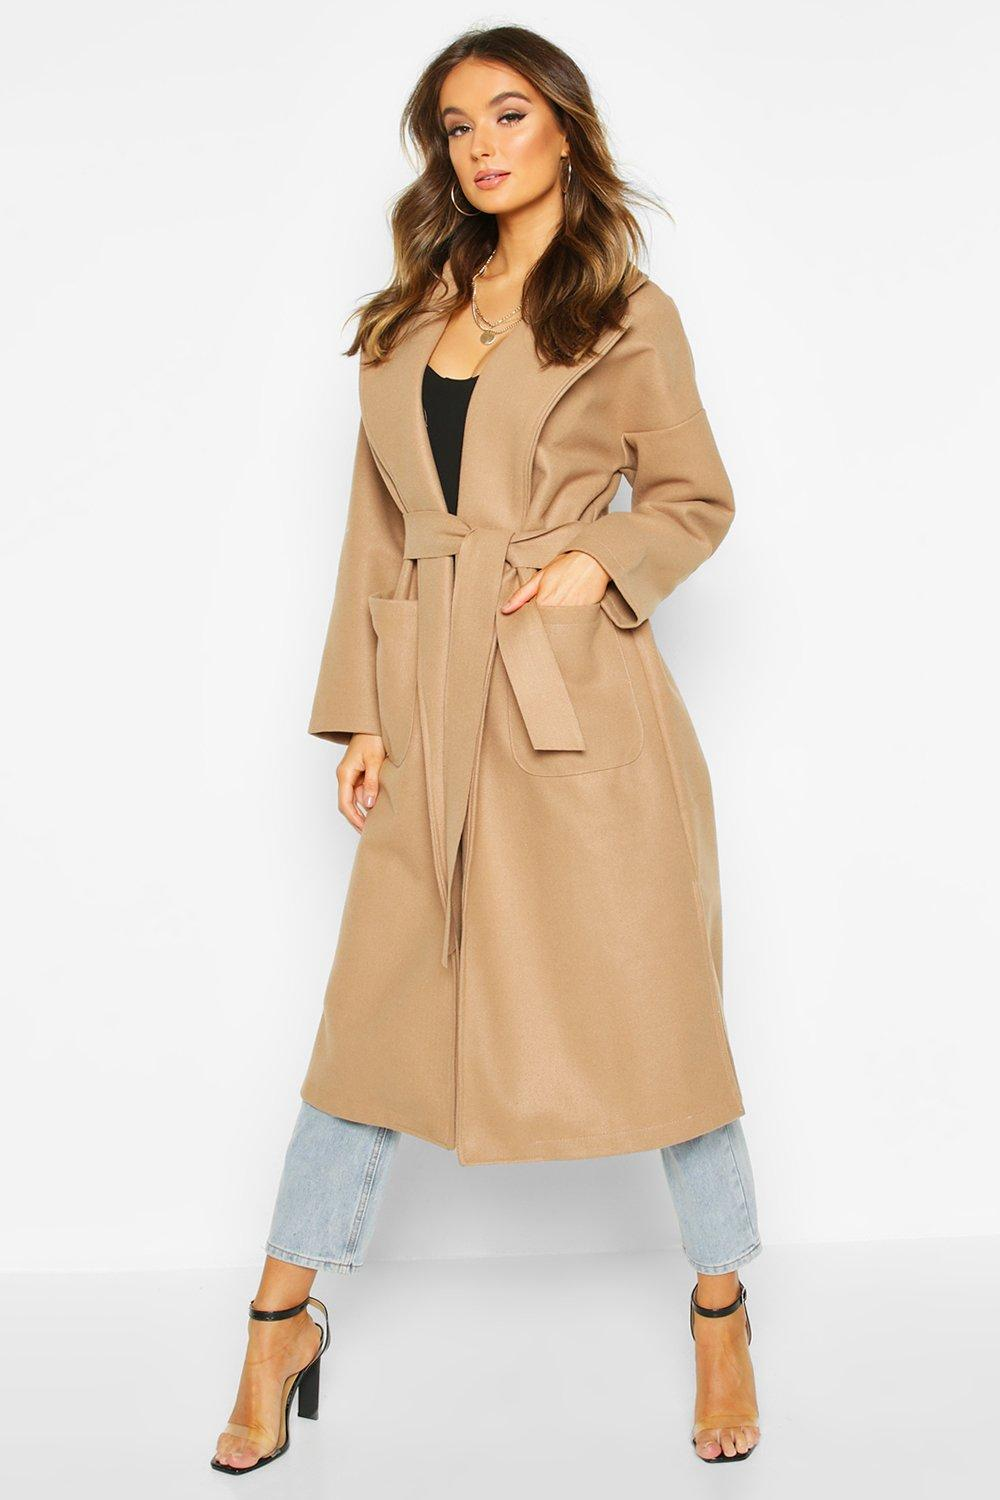 boohoo Womens Oversized Dressing Gown Belted Coat - Beige - 14, Beige